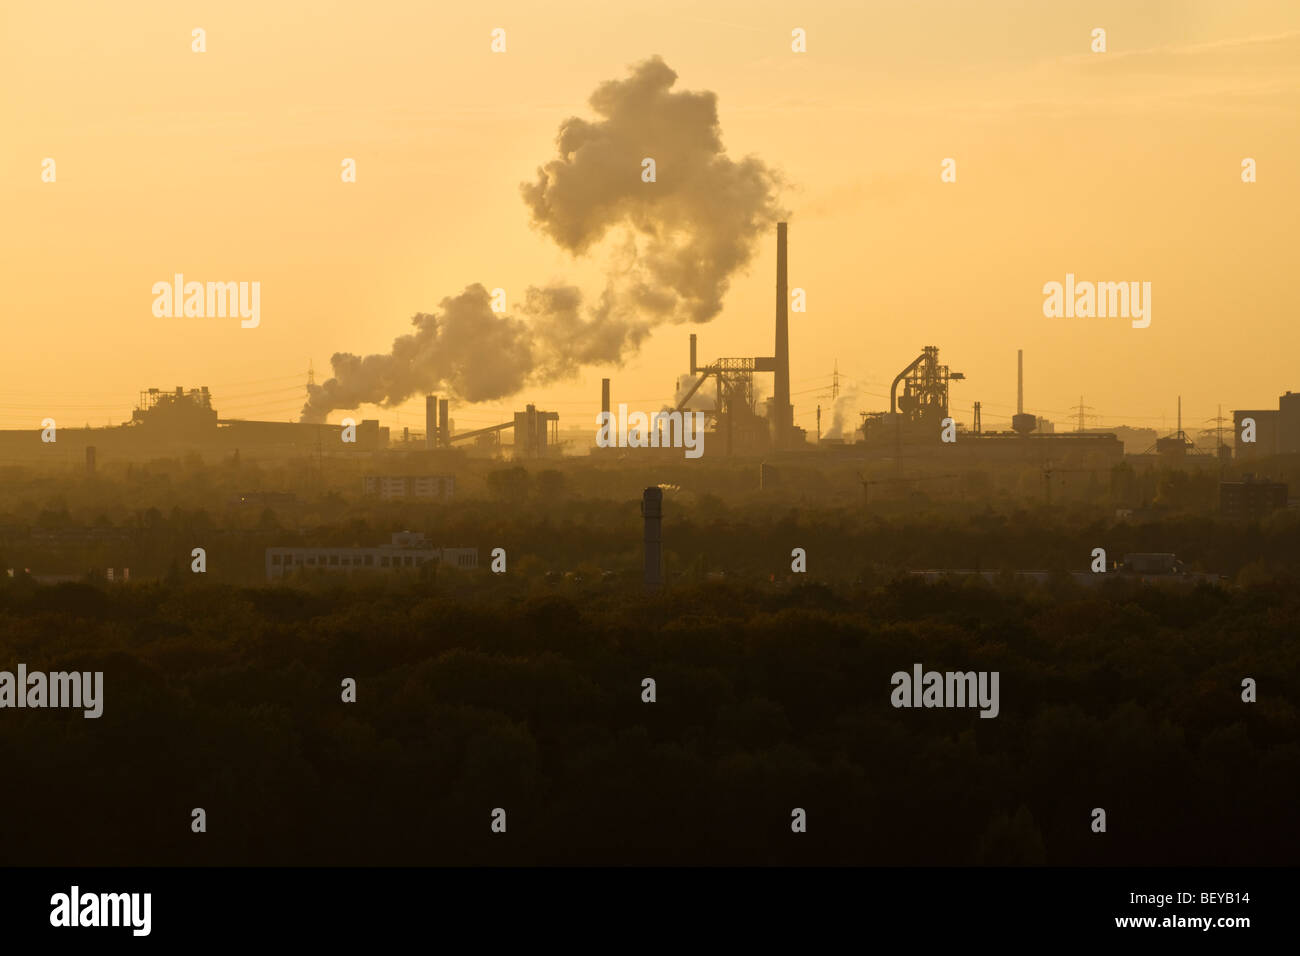 heavy industry polluting the atmosphere, sunset - Stock Image